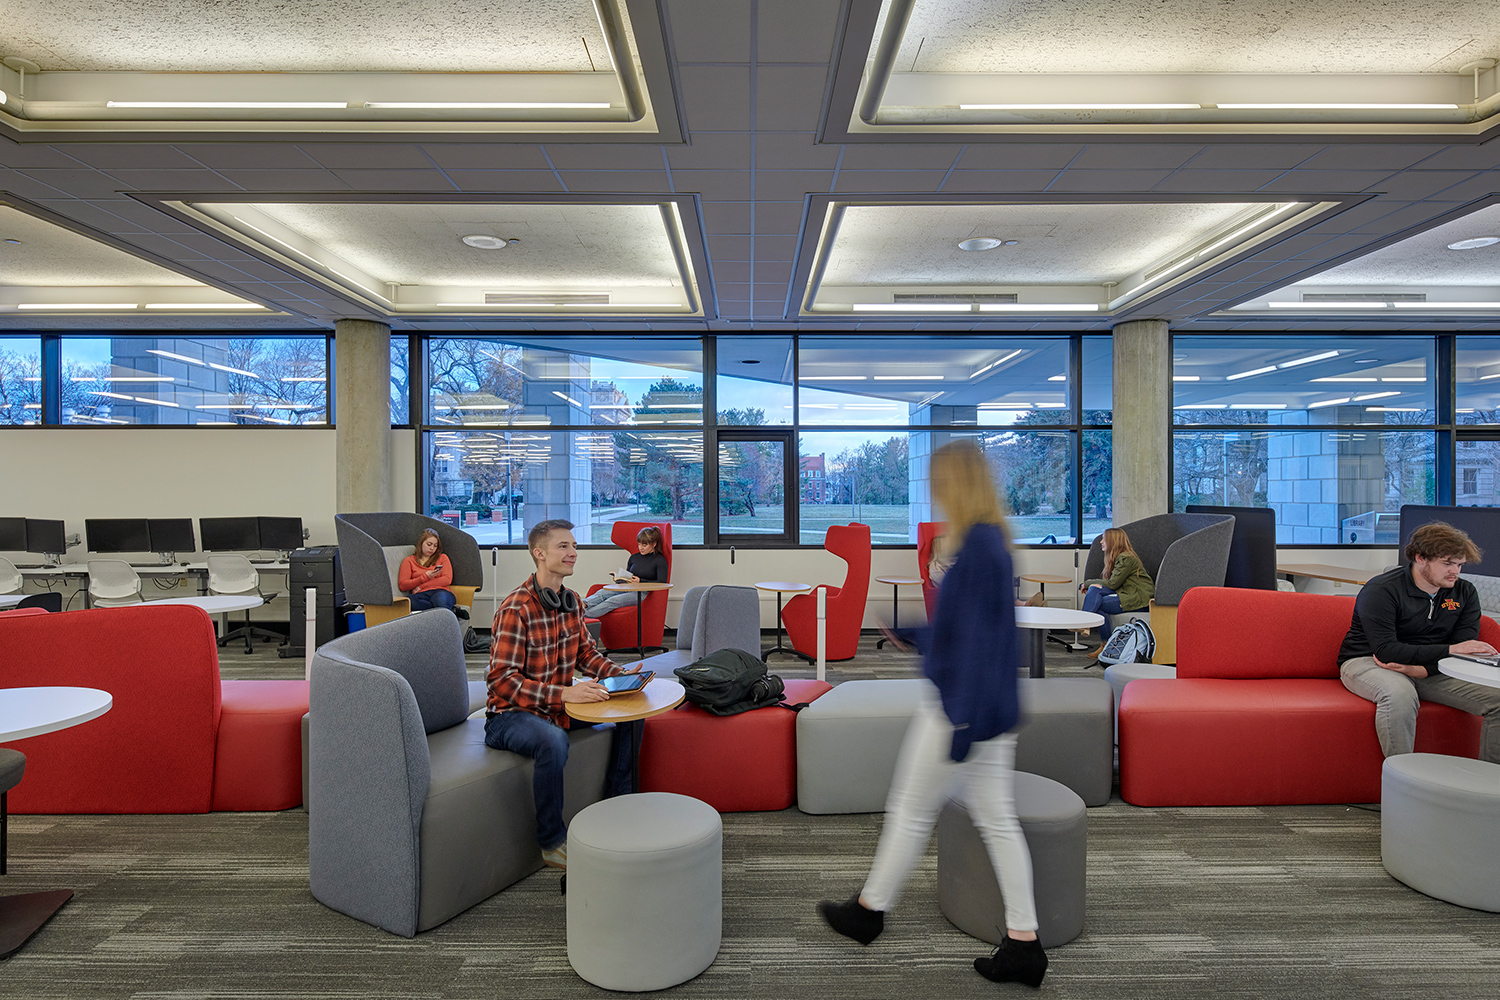 Interior of Iowa State University, Parks Library